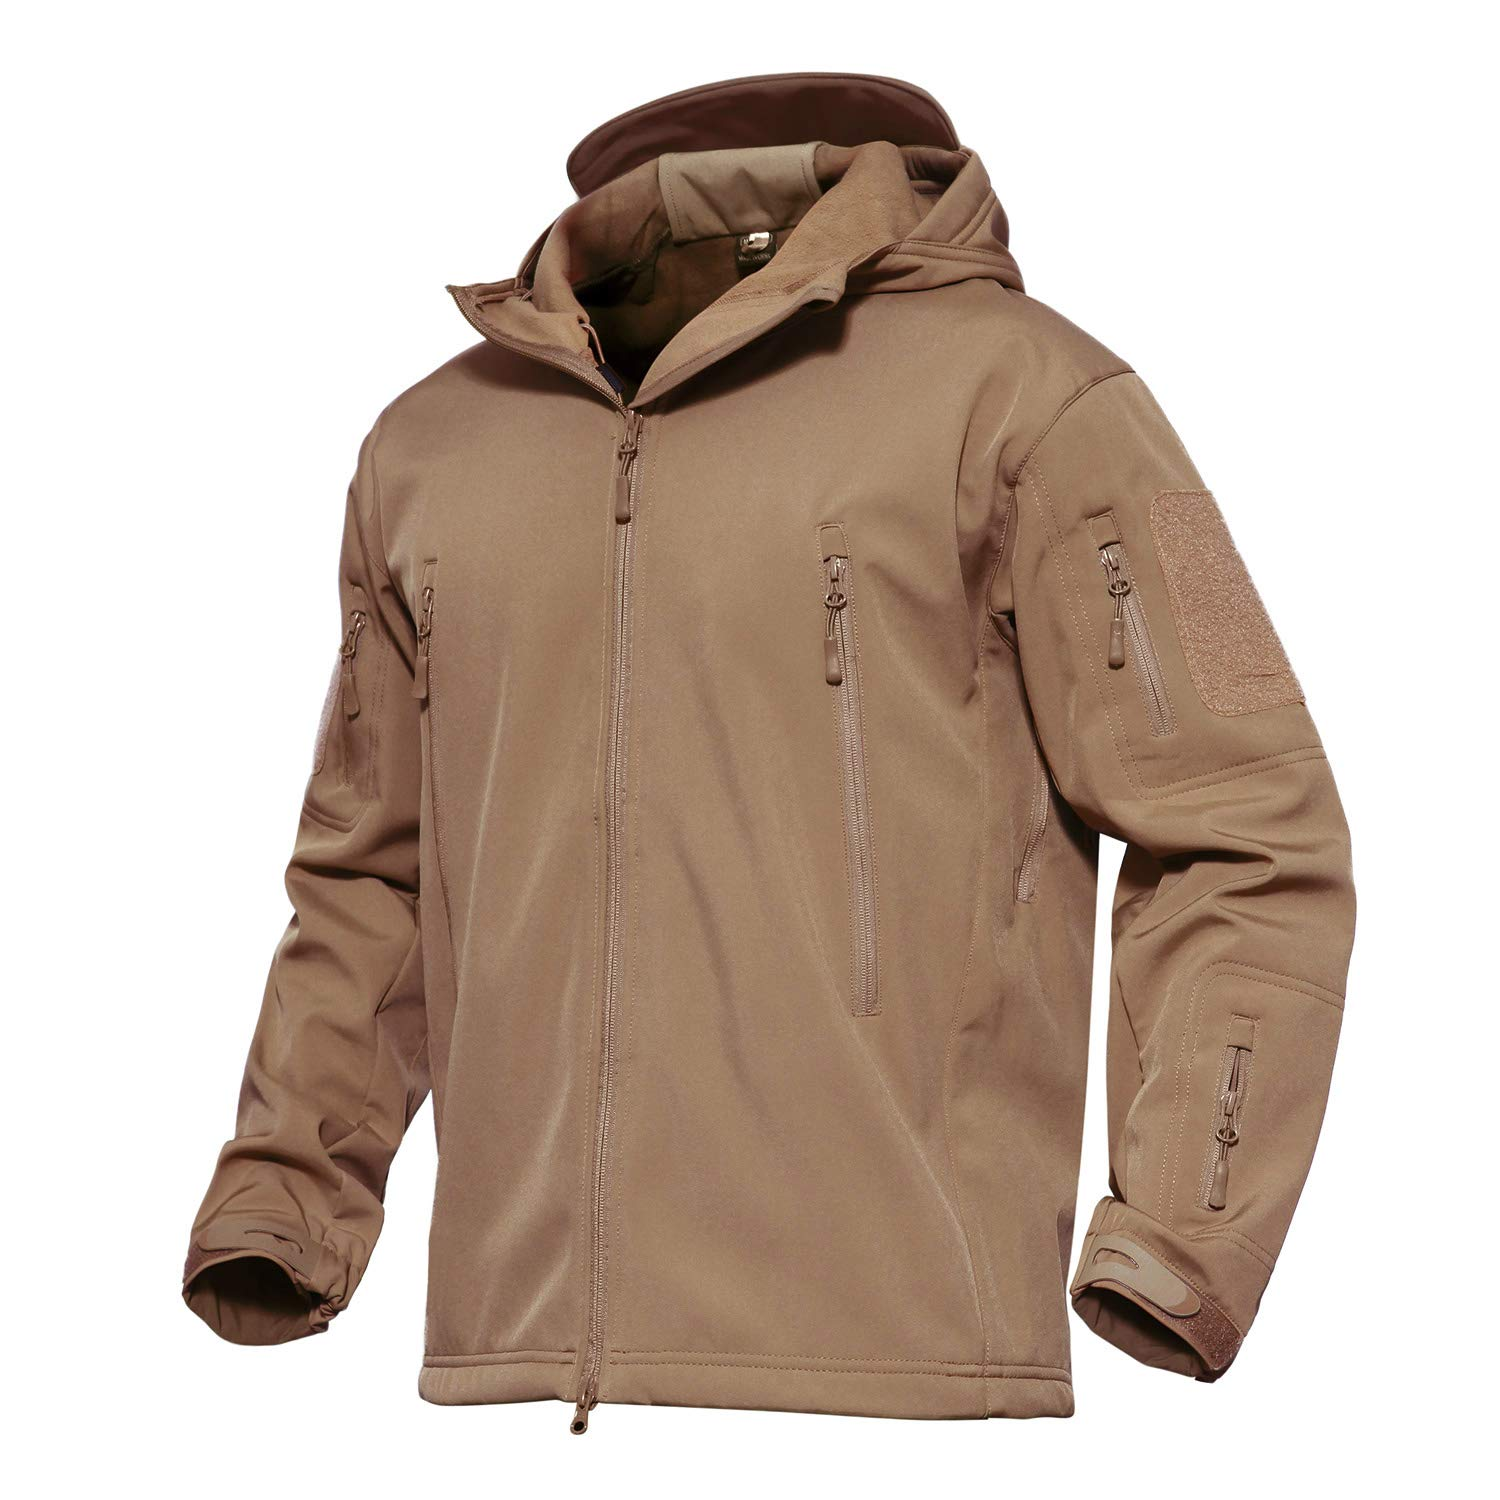 MAGCOMSEN Winter Coats for Men Tactical Jackets for Men Military Jacket Hunting Jacket Warm Jacket Thick Jacket Parka Jacket Men Sand by MAGCOMSEN